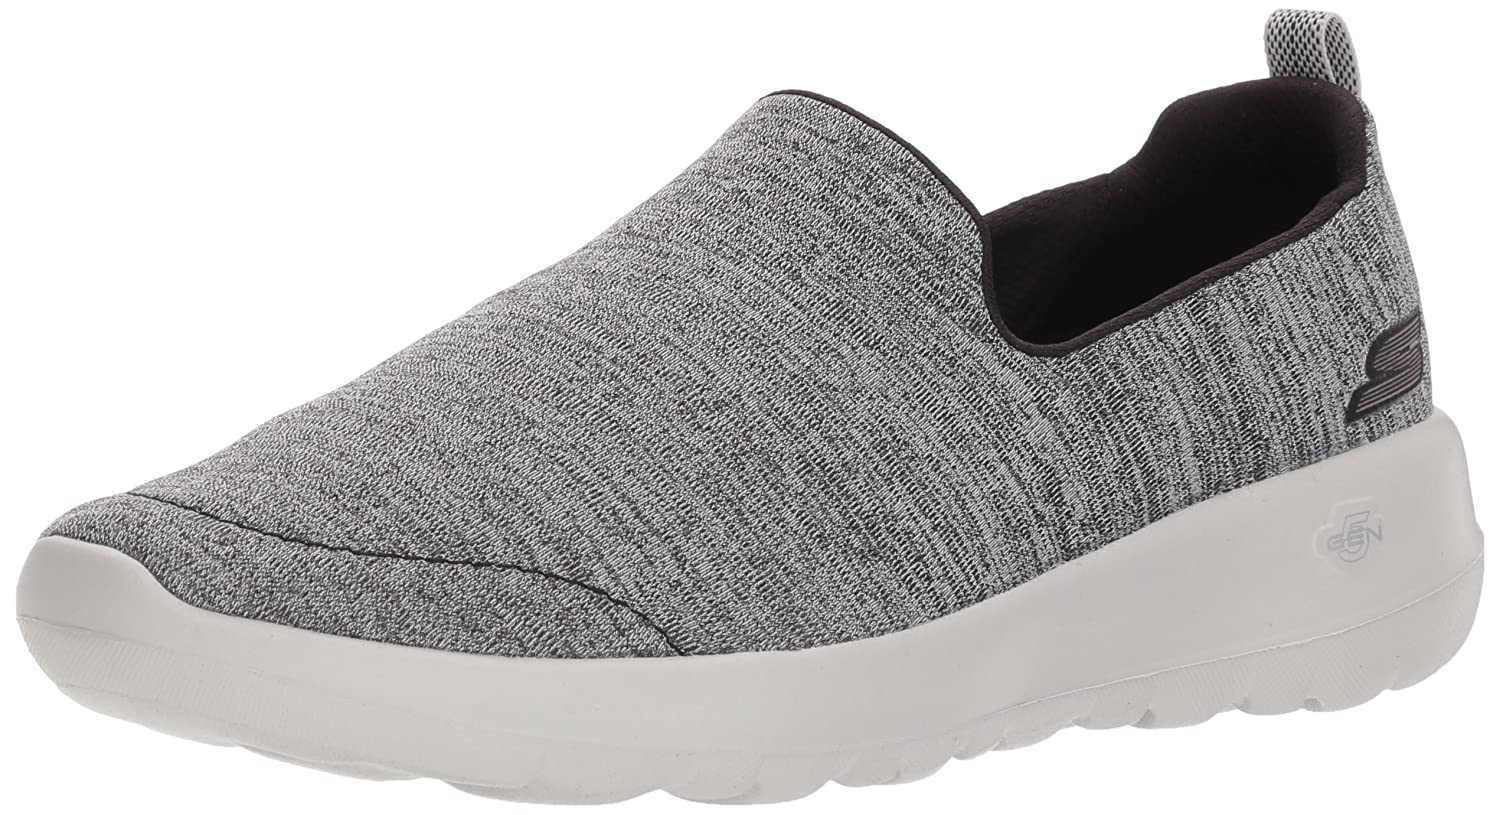 Skechers Women's Go Walk Joy-15611 Sneaker B07535XZ1J 12 B(M) US|Black/Gray